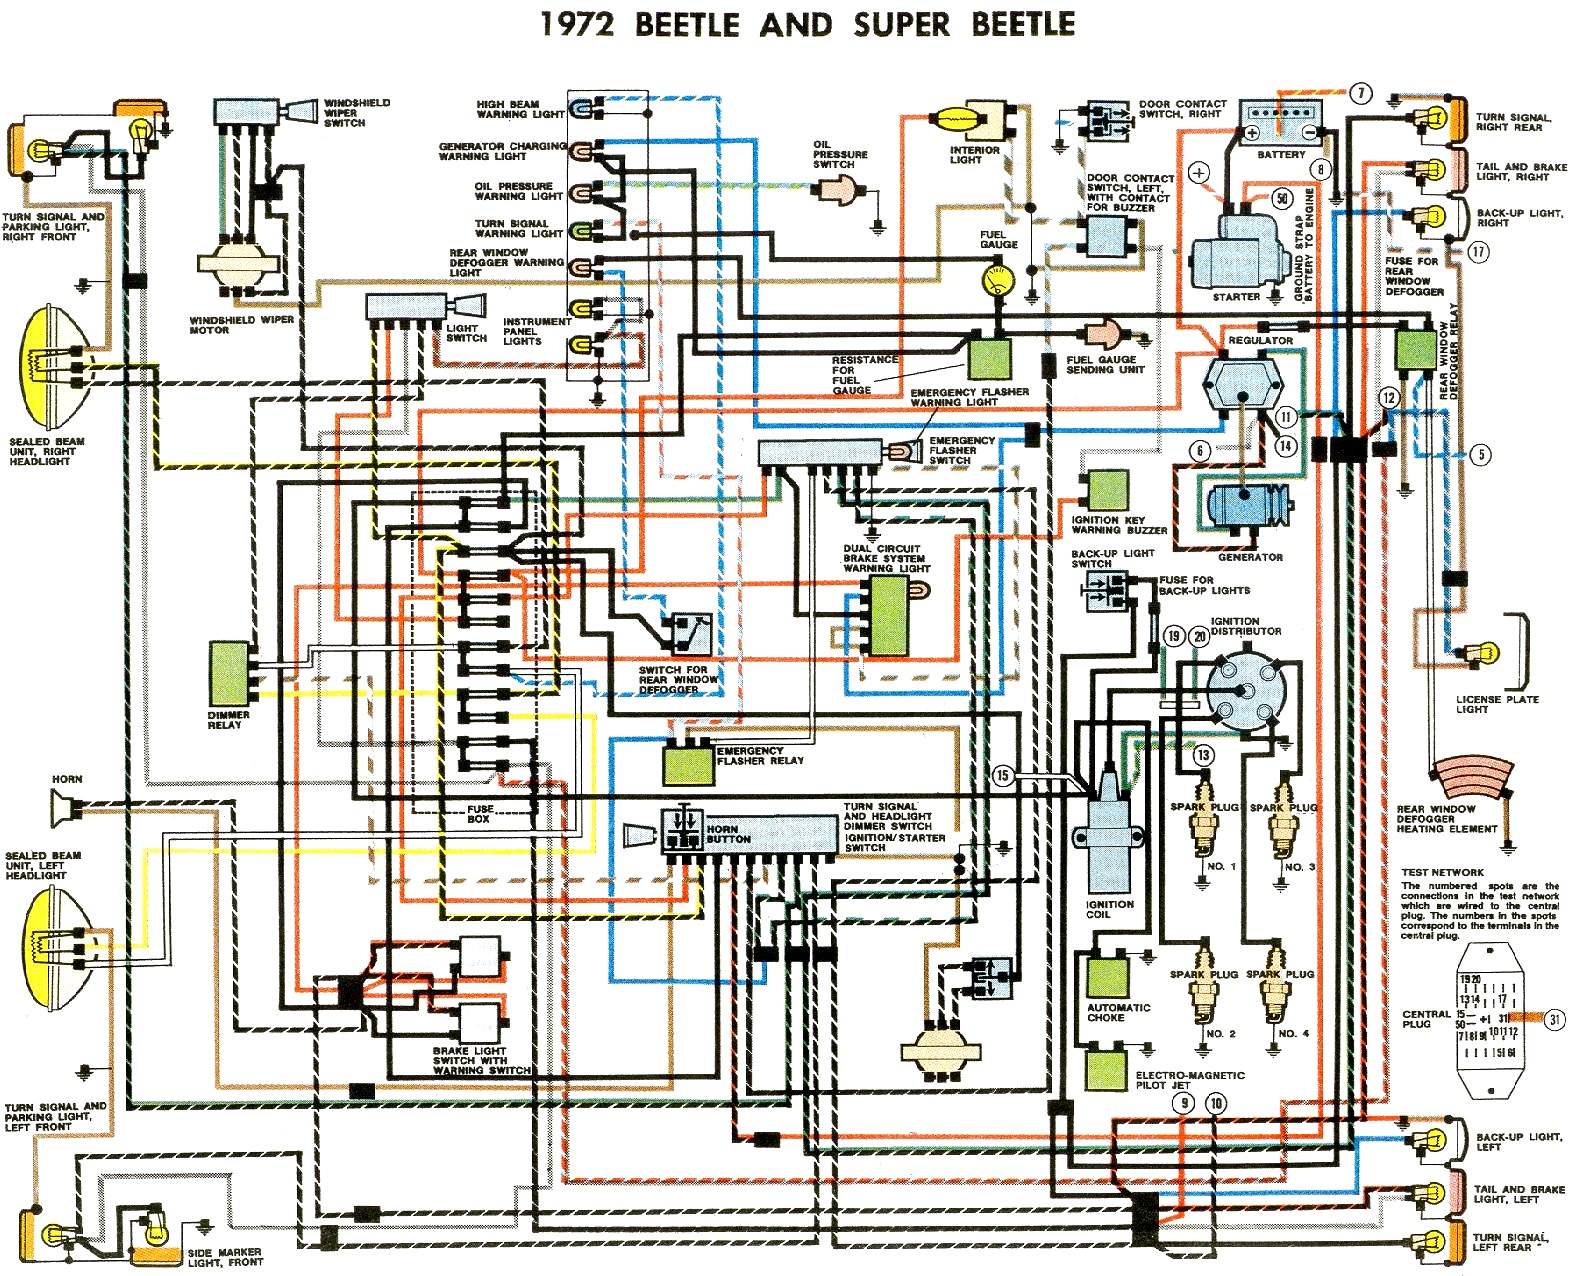 vw bug fuse box diagram 1972 beetle wiring diagram thegoldenbug com 1969 vw bug fuse box wiring